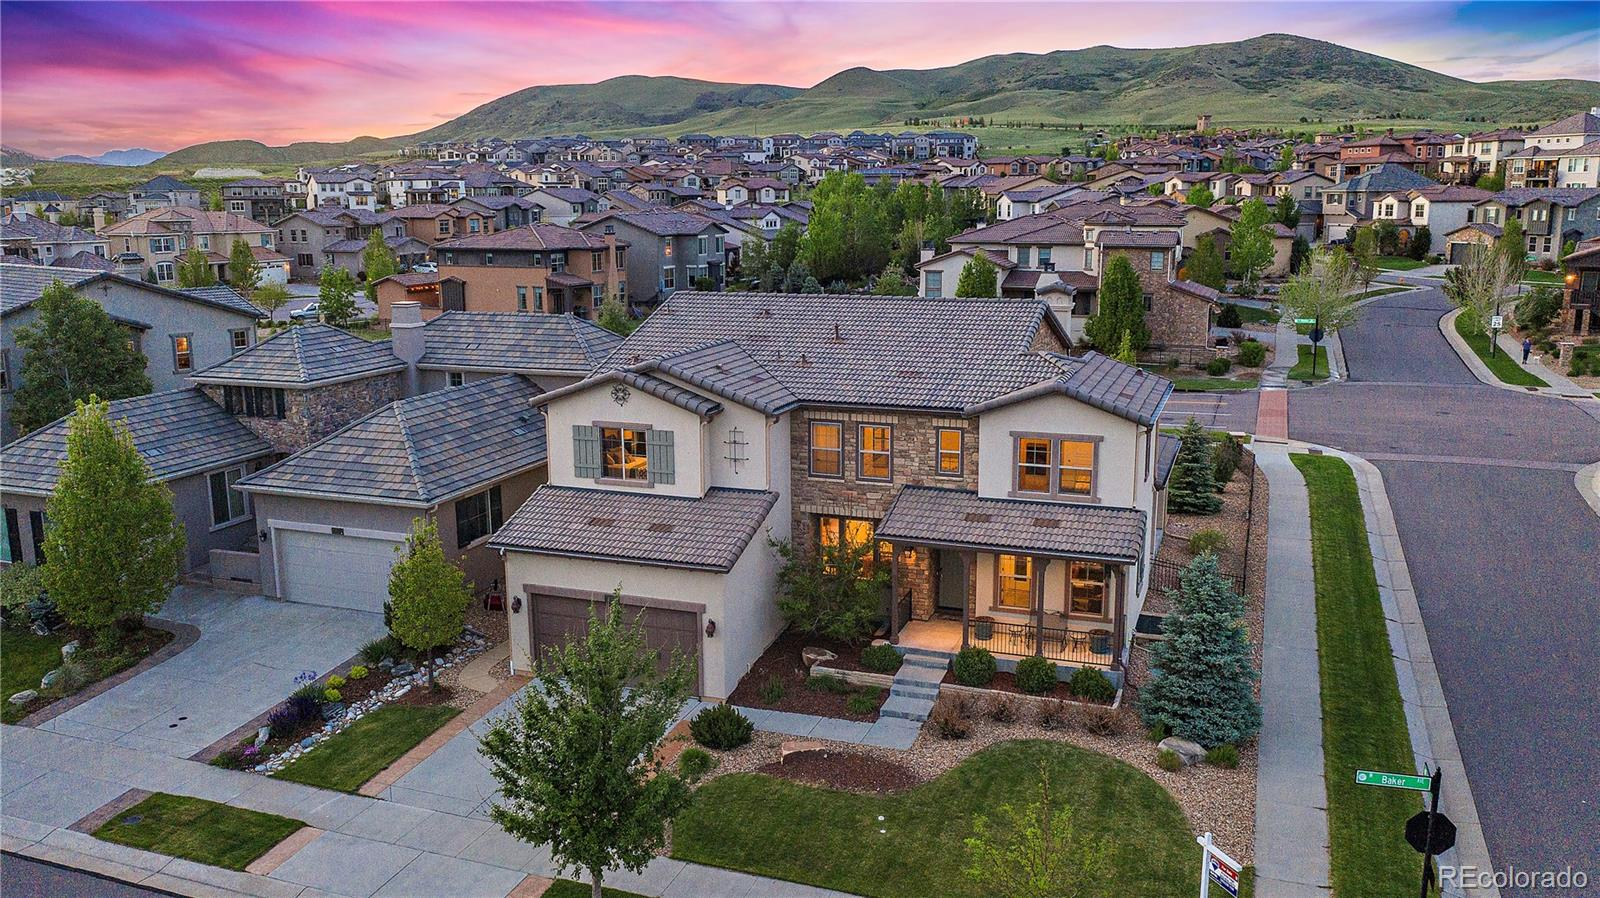 """Infinity Home Collection Vita Plan 570 in Solterra Colorado! Here is your opportunity to Own an Infinity Home on a 10,000+ sq ft large corner lot .Only one neighbor to the West and NO neighbors behind the home.Soaring, light-filled space lends a dramatic impact upon entering this spectacular home .The Vaulted Great room with Stone fireplace is filled with ample amounts of natural light. Main floor features a private office with french doors , built ins and addtional recessed lighting. Formal Dining room is private and also has addtional recessed lighting with a butler's pantry with tile back splash.The large chef's kitchen features a Sizeable Kitchen Island, Gas Cook top , Double Ovens , Tile back splash and under cabinet lighting. This home has a covered private patio that leads to a substantial flat private fenced back yard with an addtional Stamped Concrete patio area. Fully landscaped front and back yard.3-car garage-perfect for storing all your recreational equipment. Minutes to Bike/Hike Green Mountain, Bear Creek Lake Park and Red Rocks Park .Many community events at the Solterra Retreat. Infinity Home Collection Screams Quality - don't miss out on this home and location.If you would like a """"live tour"""" through Zoom/Skype/Facetime-please contact Listing Agent."""